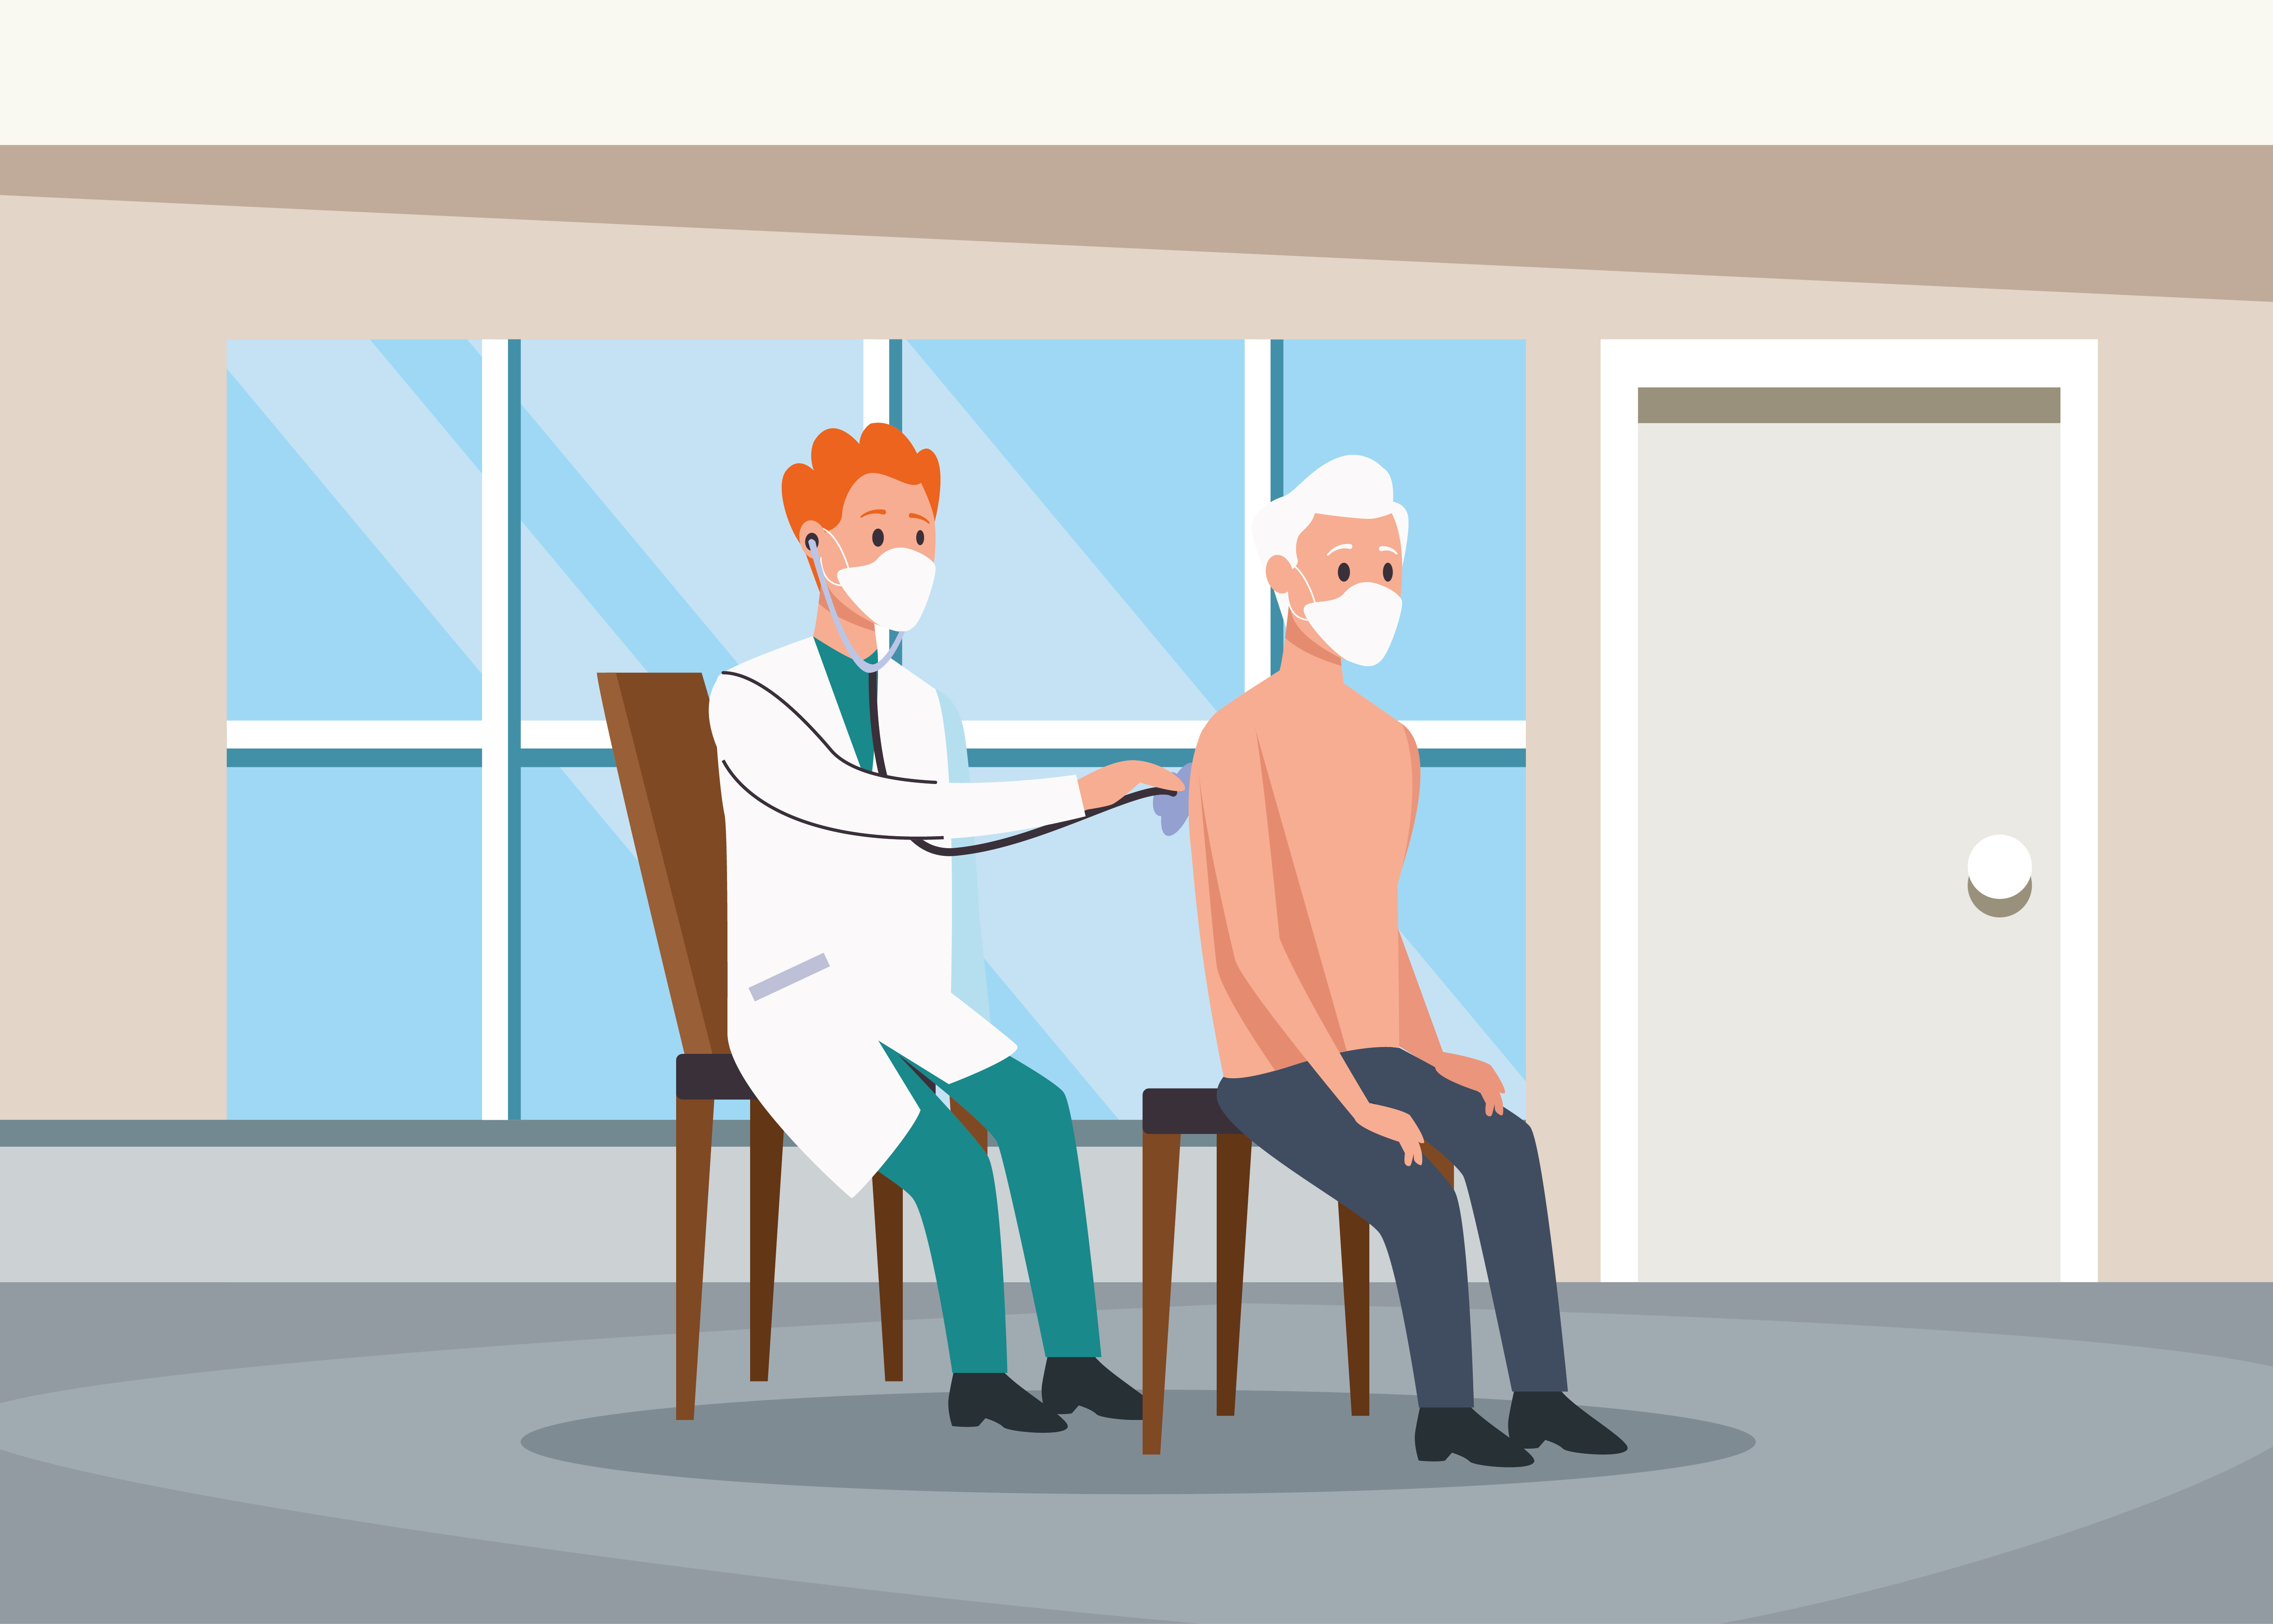 Doctor exams elderly person characters vector